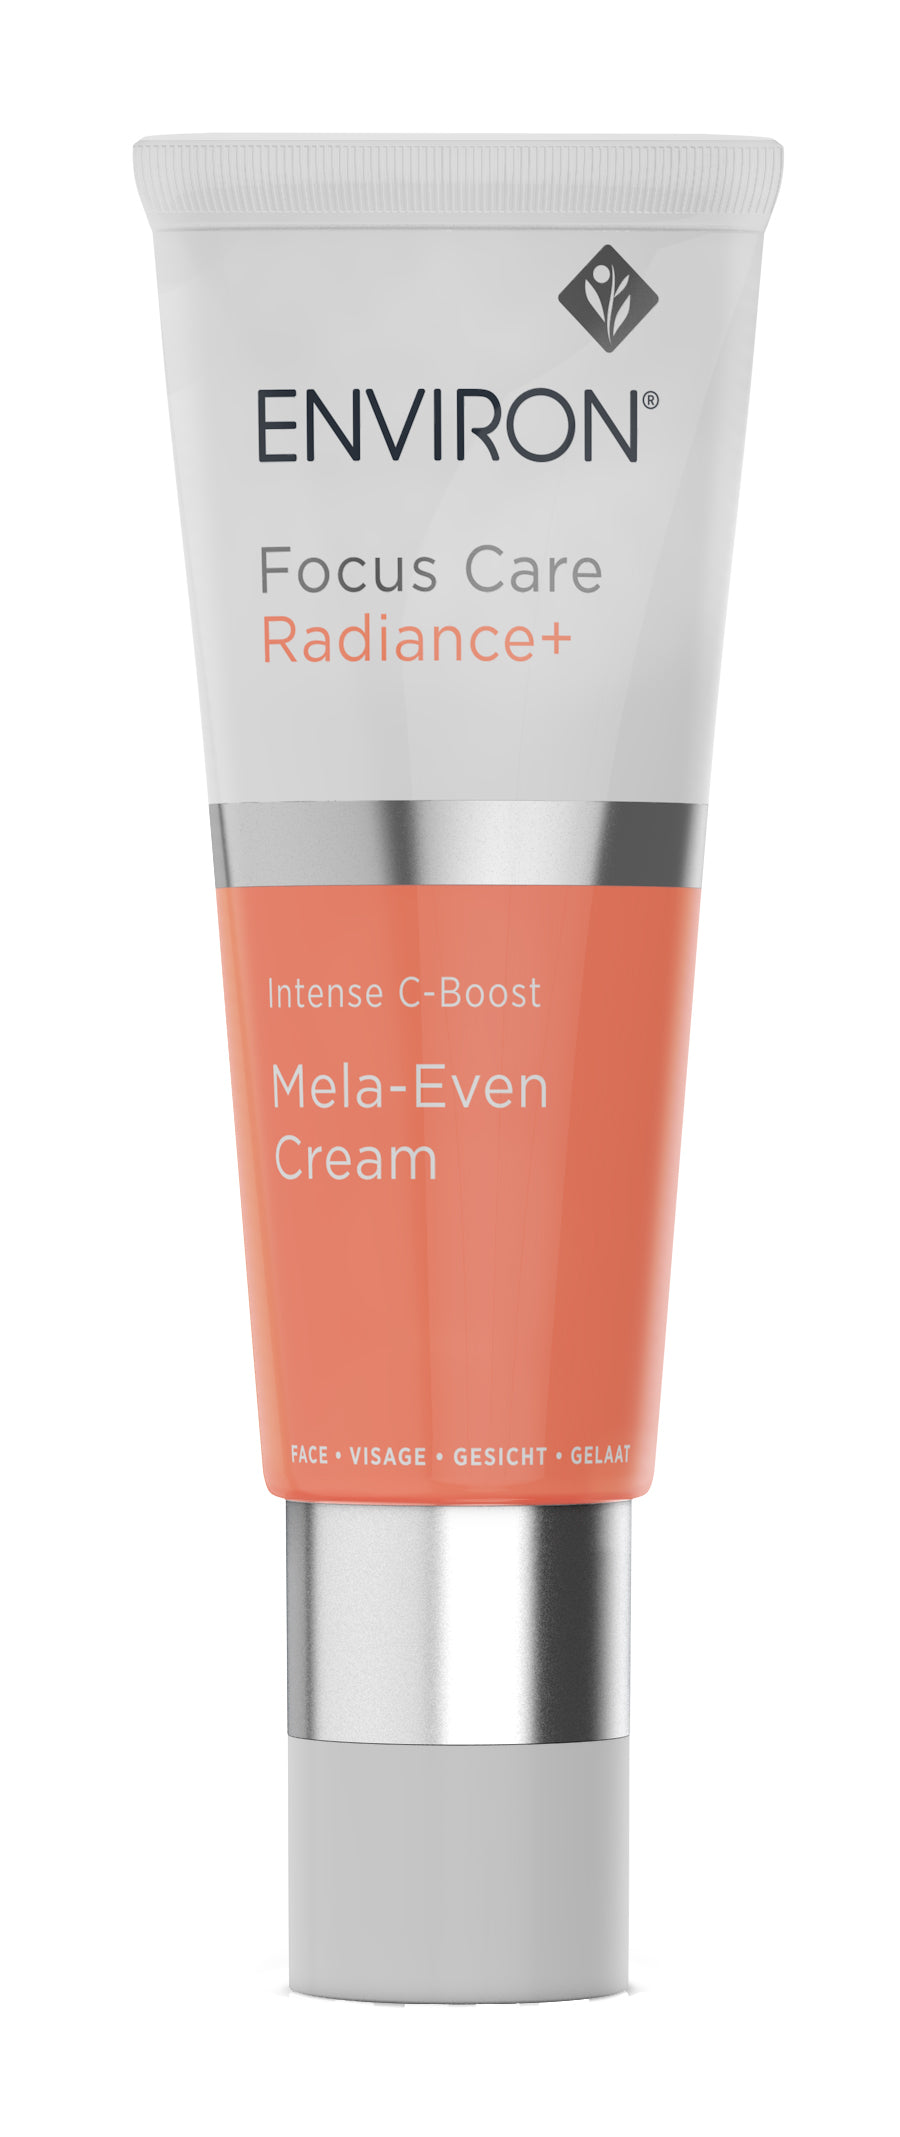 Intense C-Boost Mela-Even Cream -- Focus Care Radiance + ** 25 ml/.85 fl oz